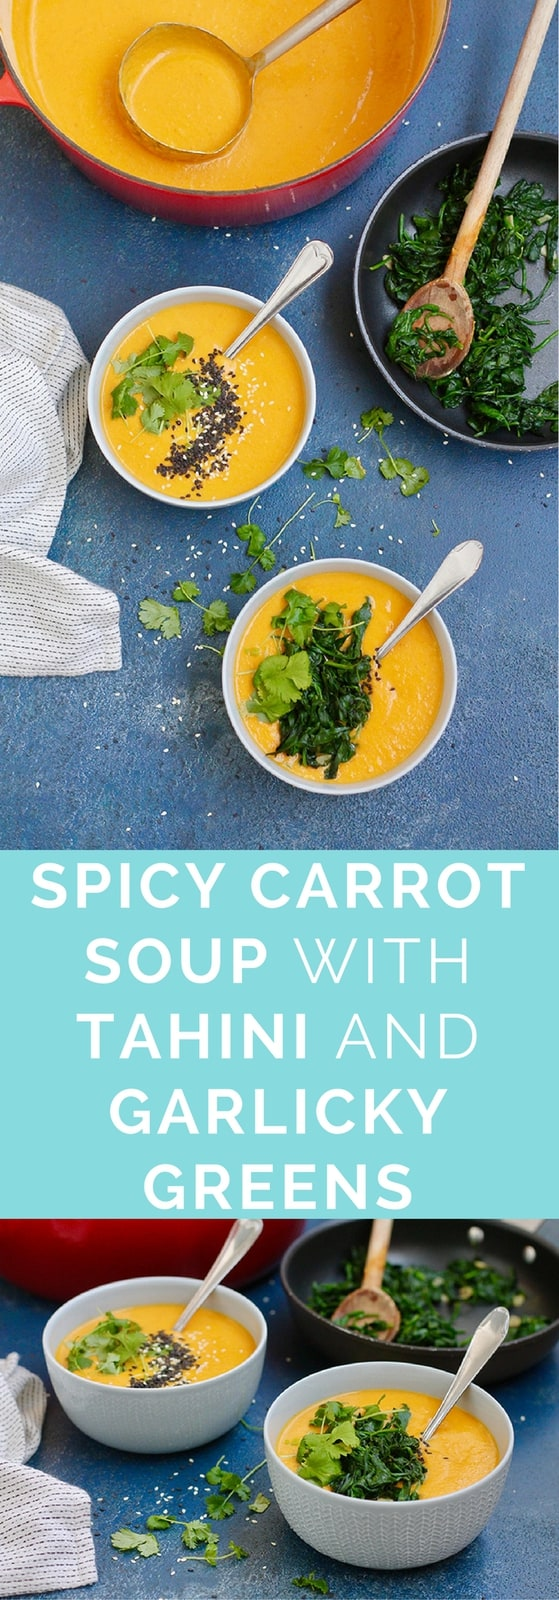 Velvety smooth Spicy Carrot Soup with tahini and topped with garlicky wilted greens cooked in toasted sesame oil. Naturally vegan and gluten-free.